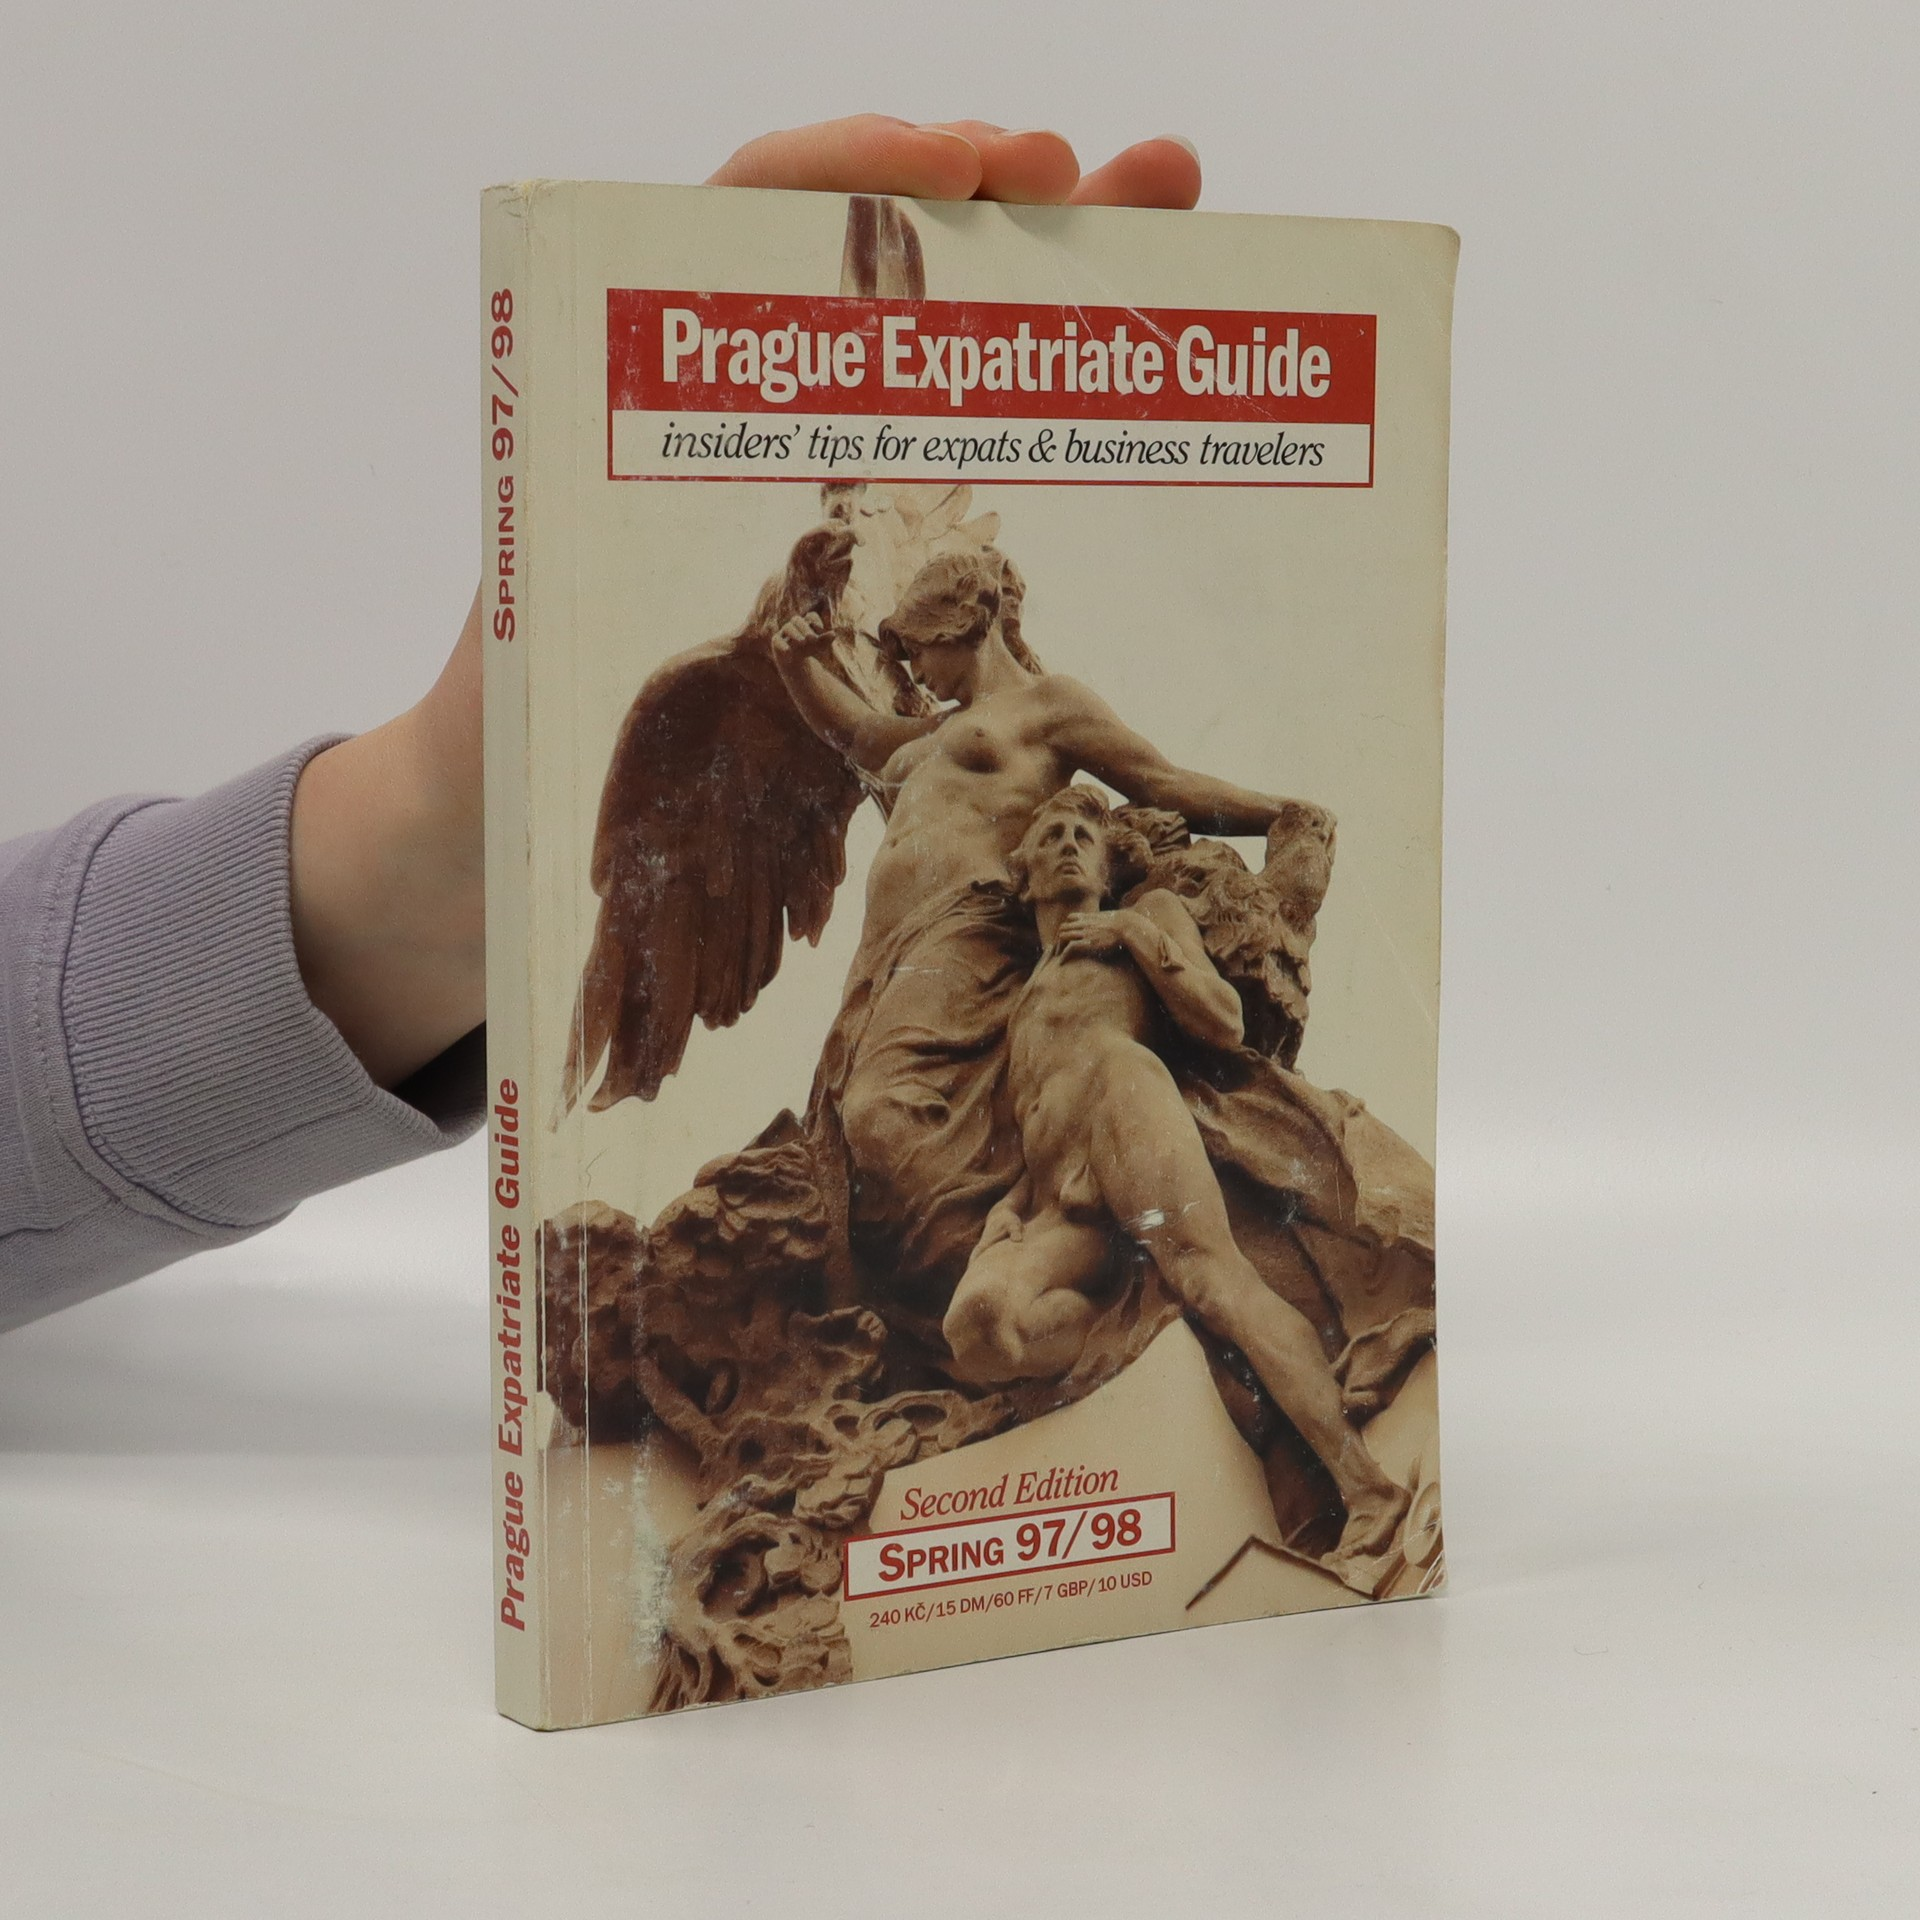 antikvární kniha Prague expatriate guide. Insiders' tips for expats & business travelers, 1997